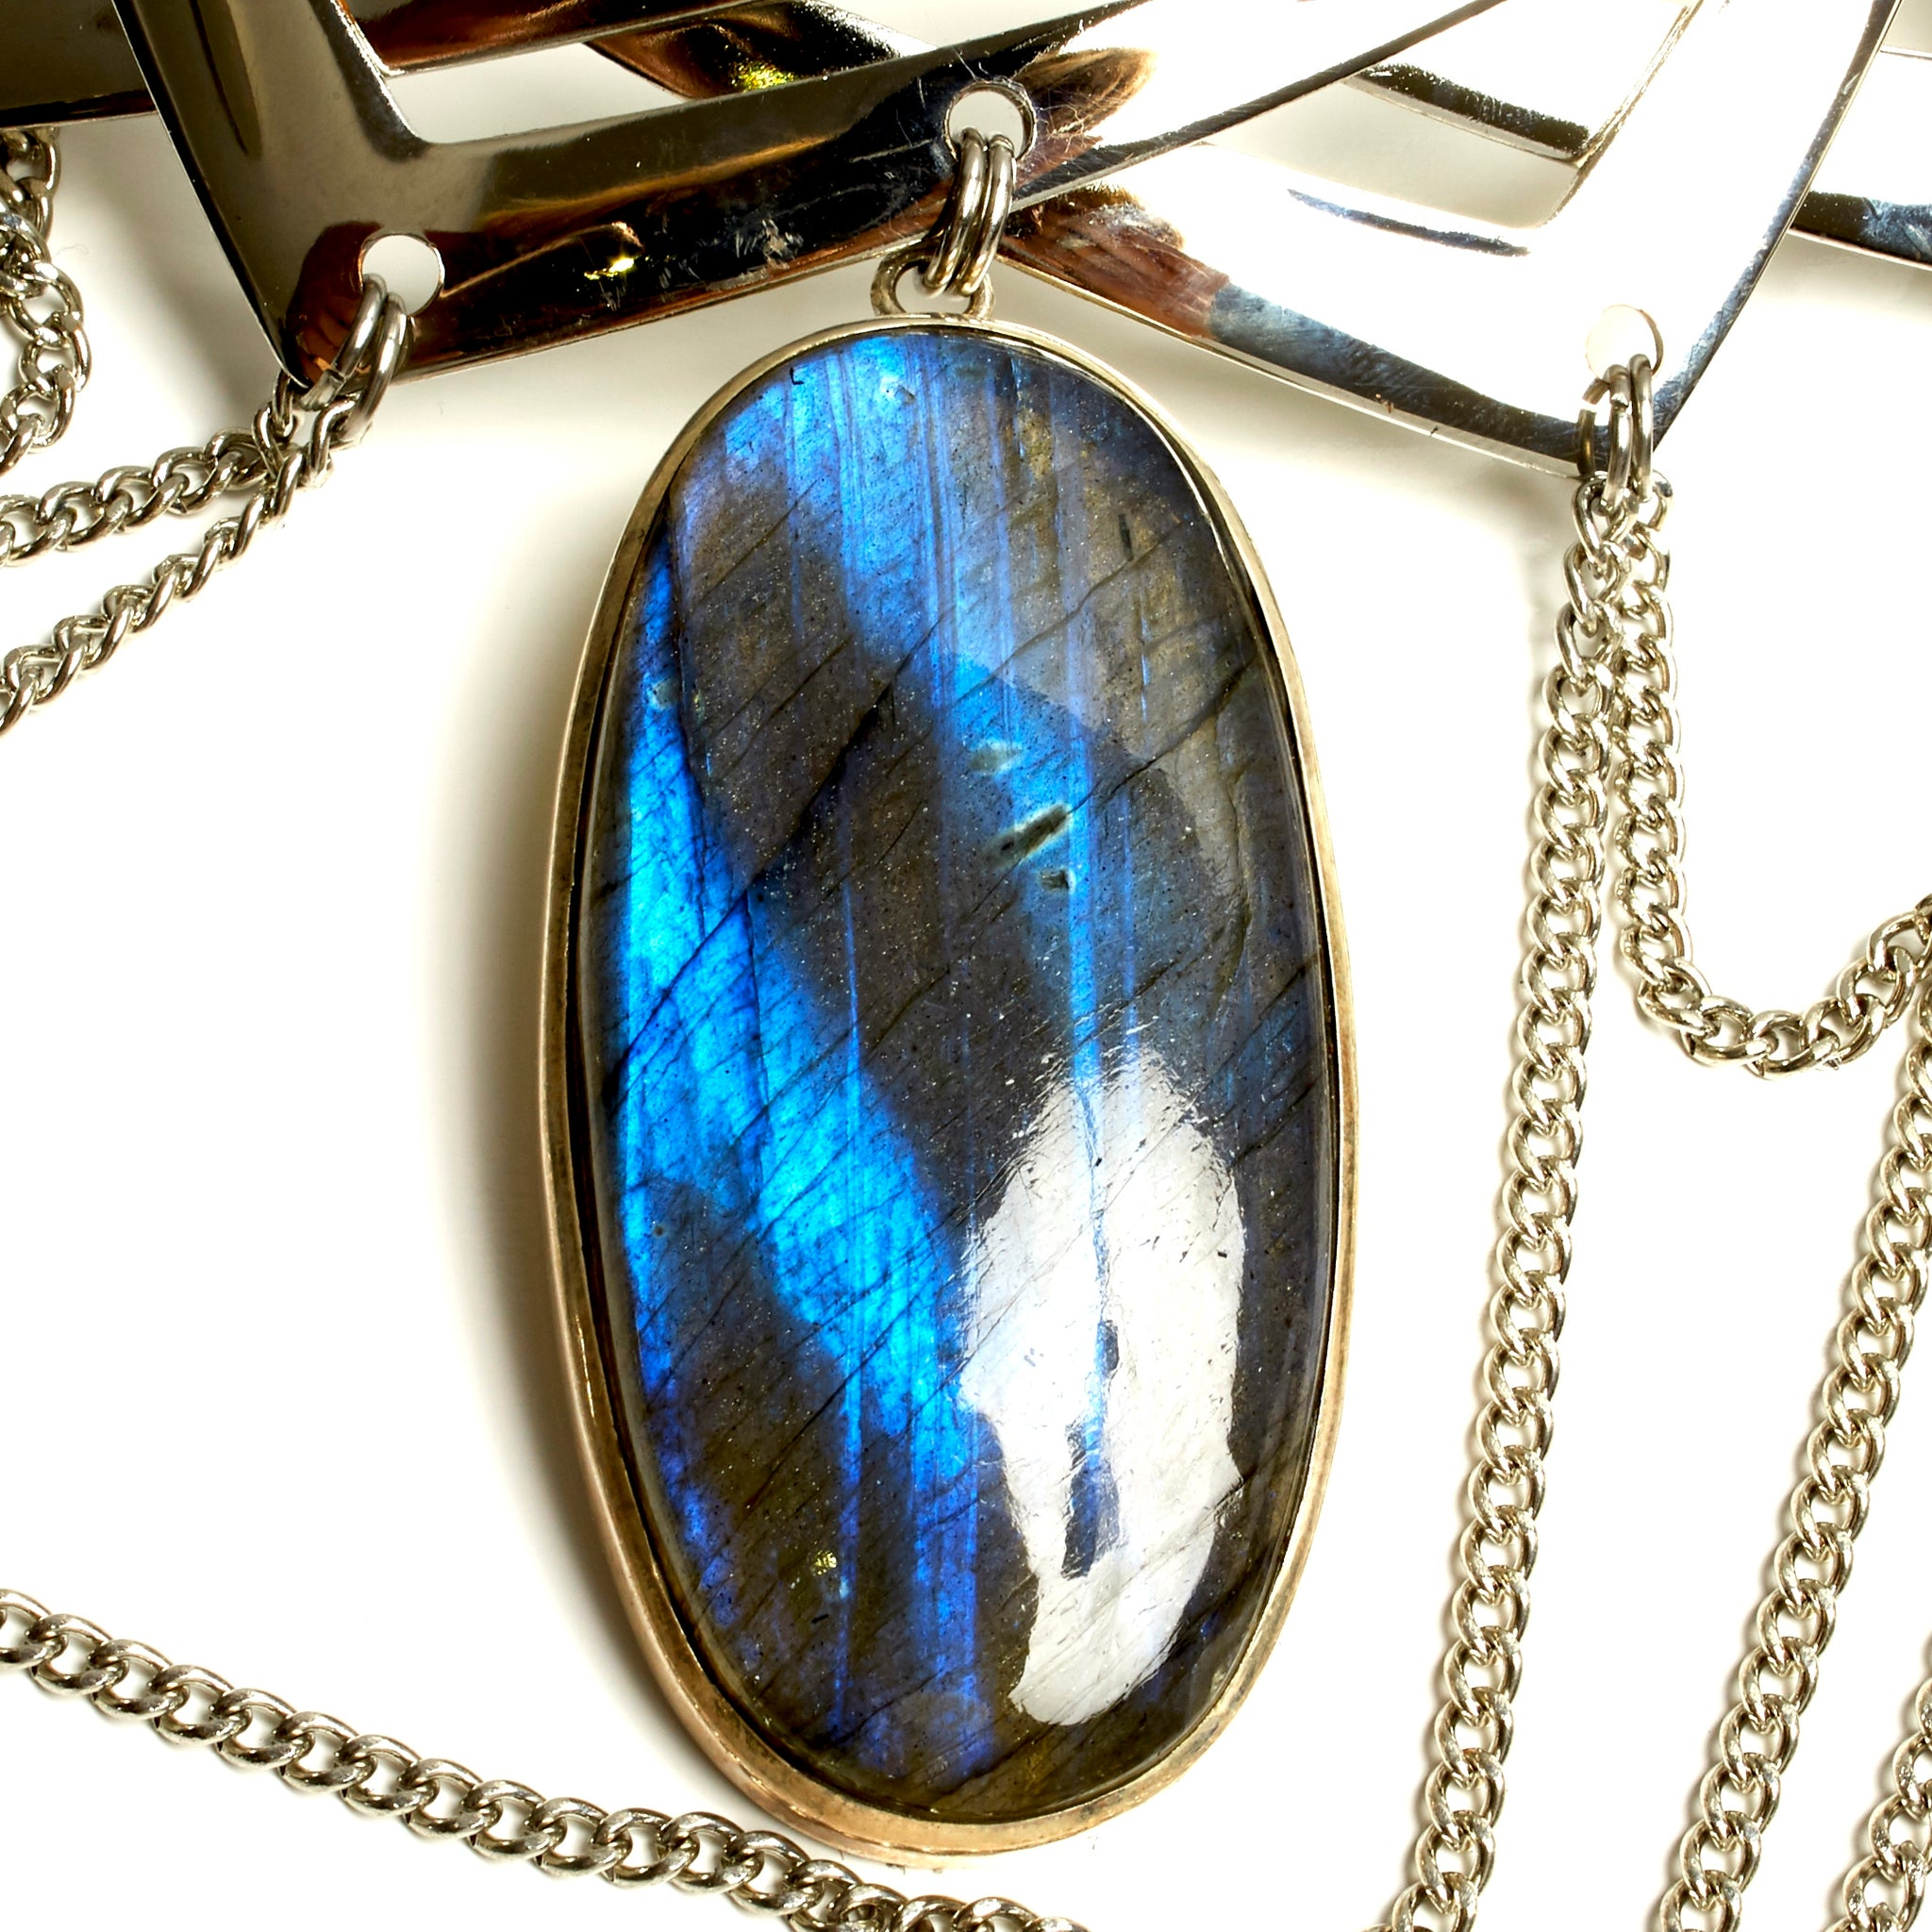 INTRICATE TORQUE NECKLACE WITH CHAINS AND LARGE LABRADORITE STONE PENDENT. by nyet jewelry.